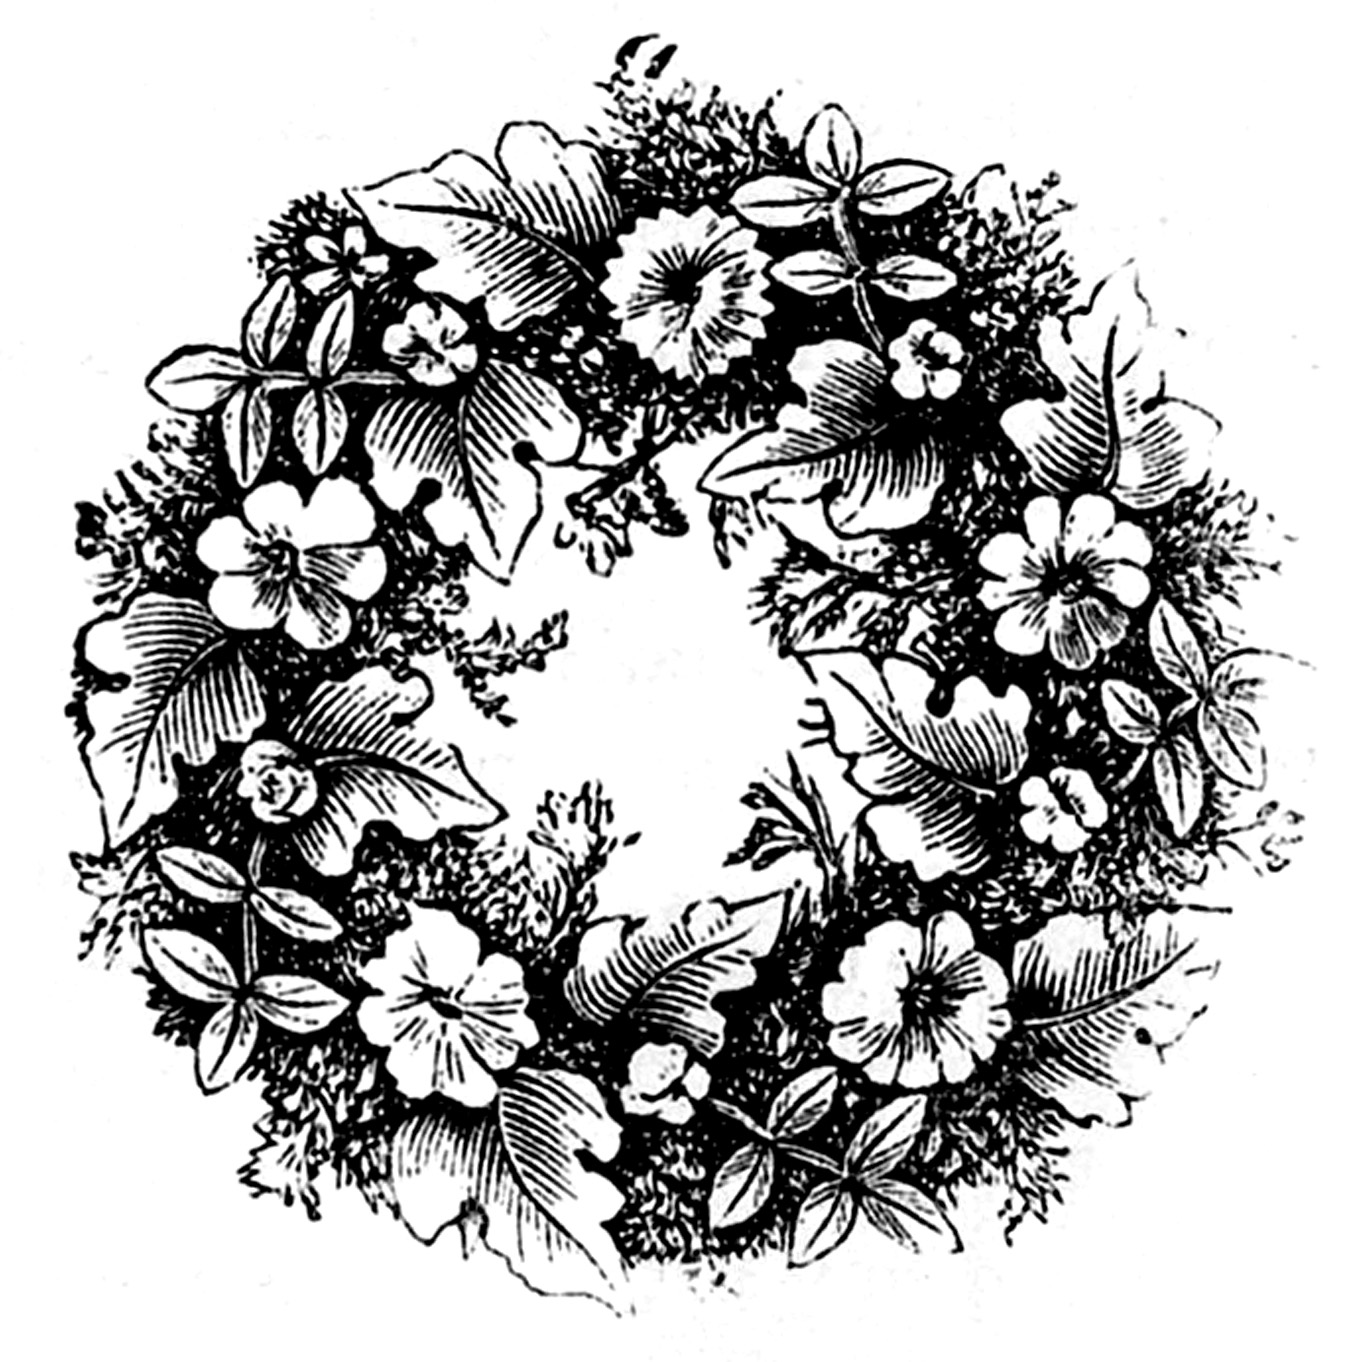 Vintage clip art floral wreaths the graphics fairy